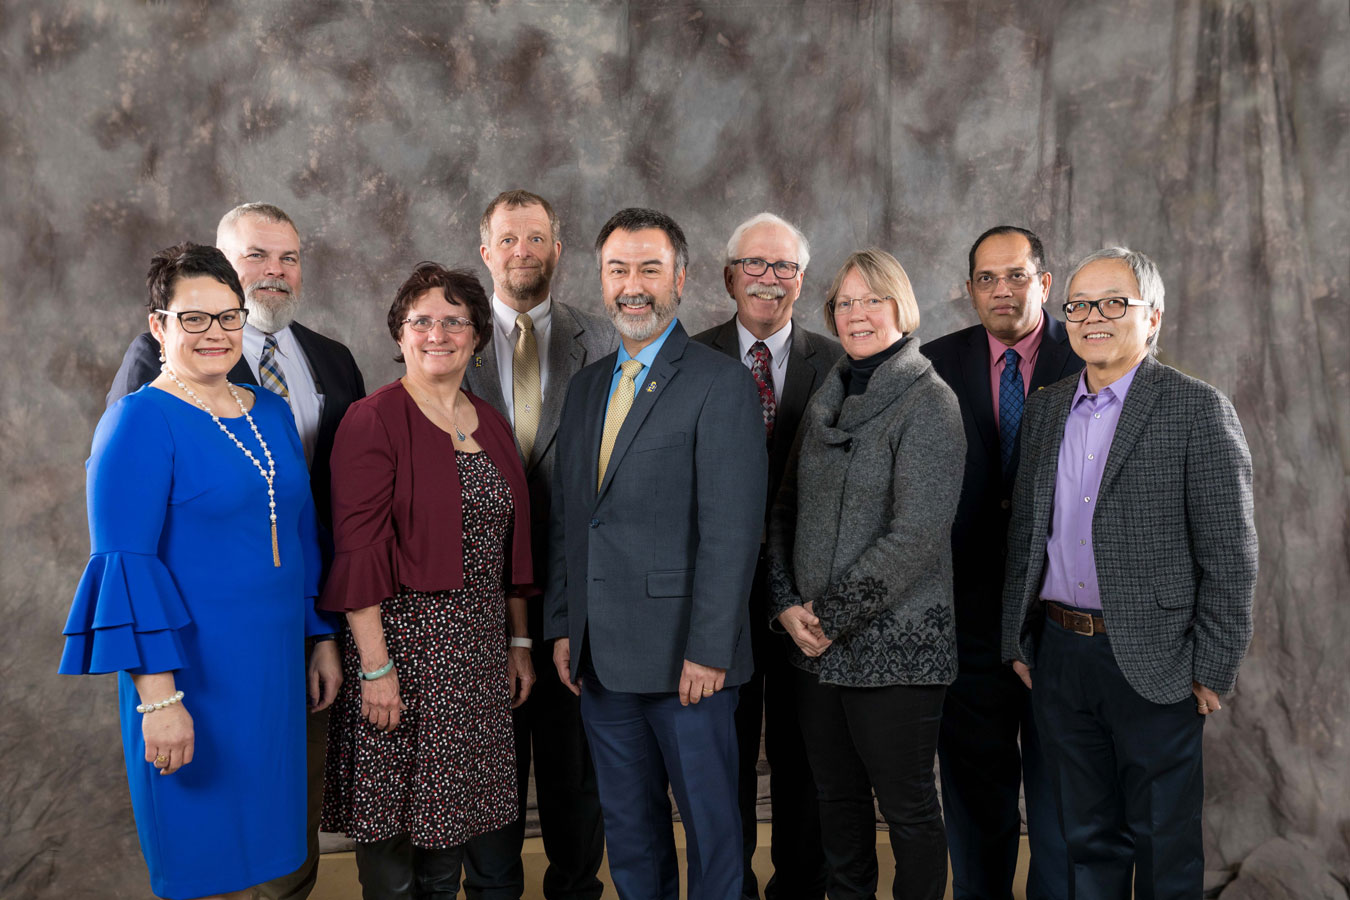 College of Ag, Food and Environmental Sciences faculty excellence award recipients